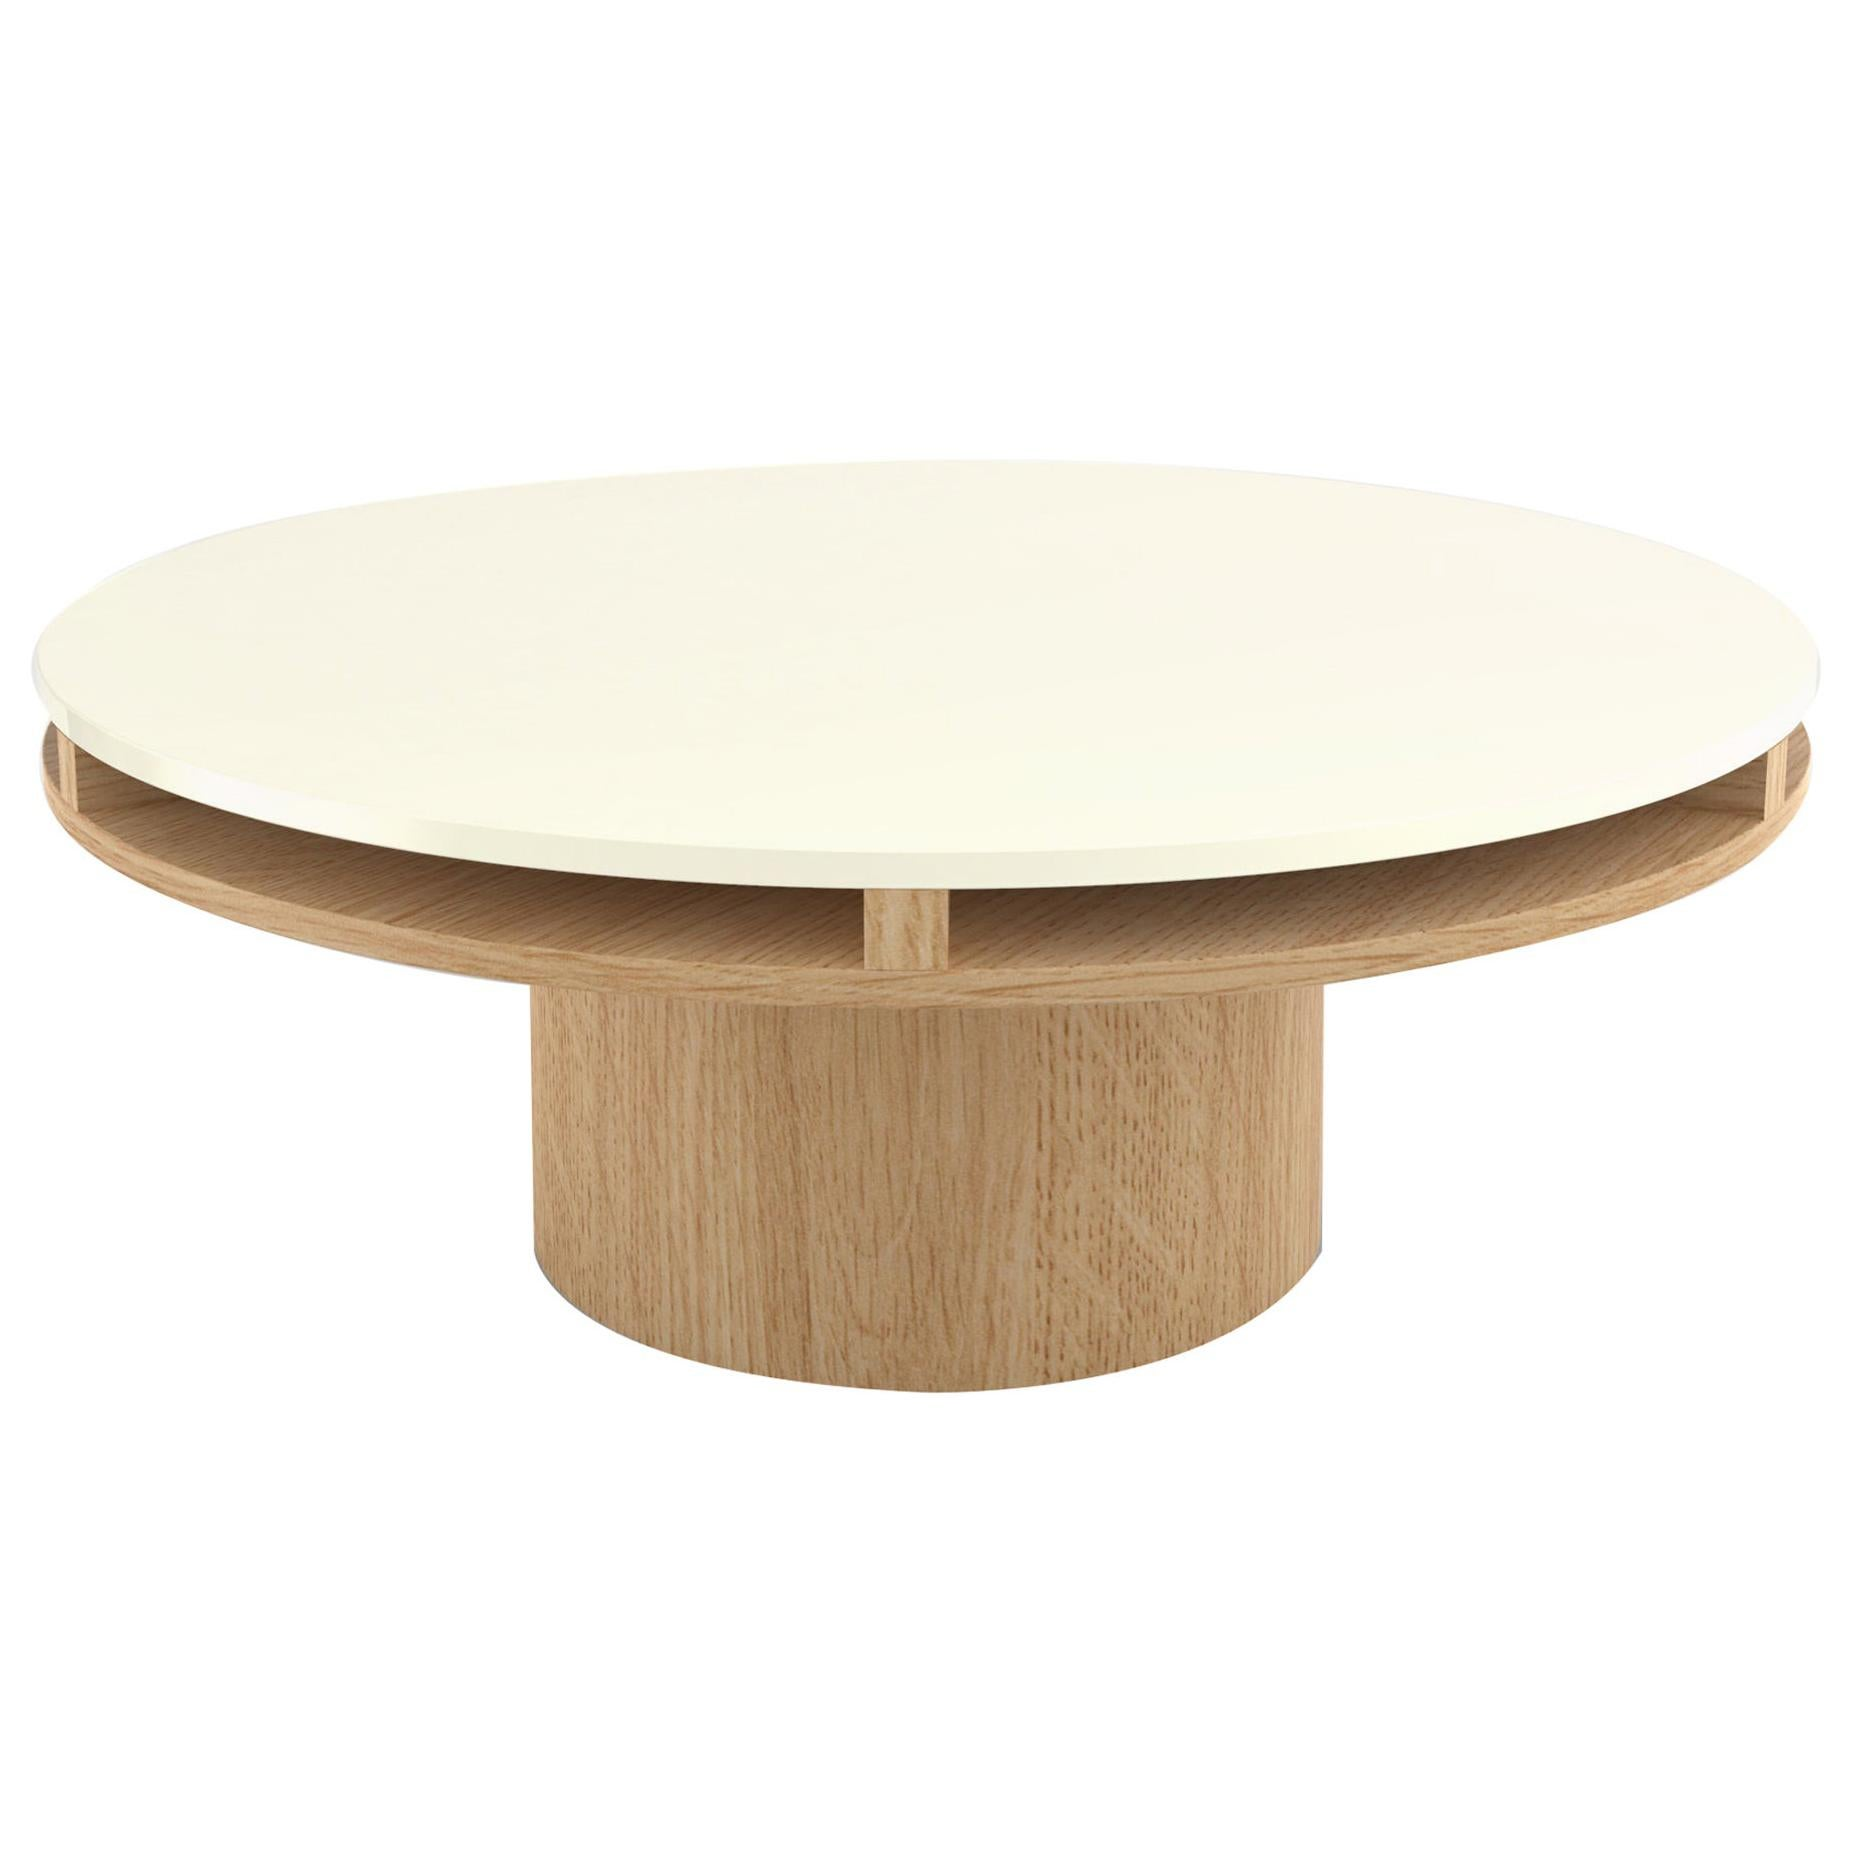 Contemporary 102 Coffee Table in Oak and White by Orphan Work